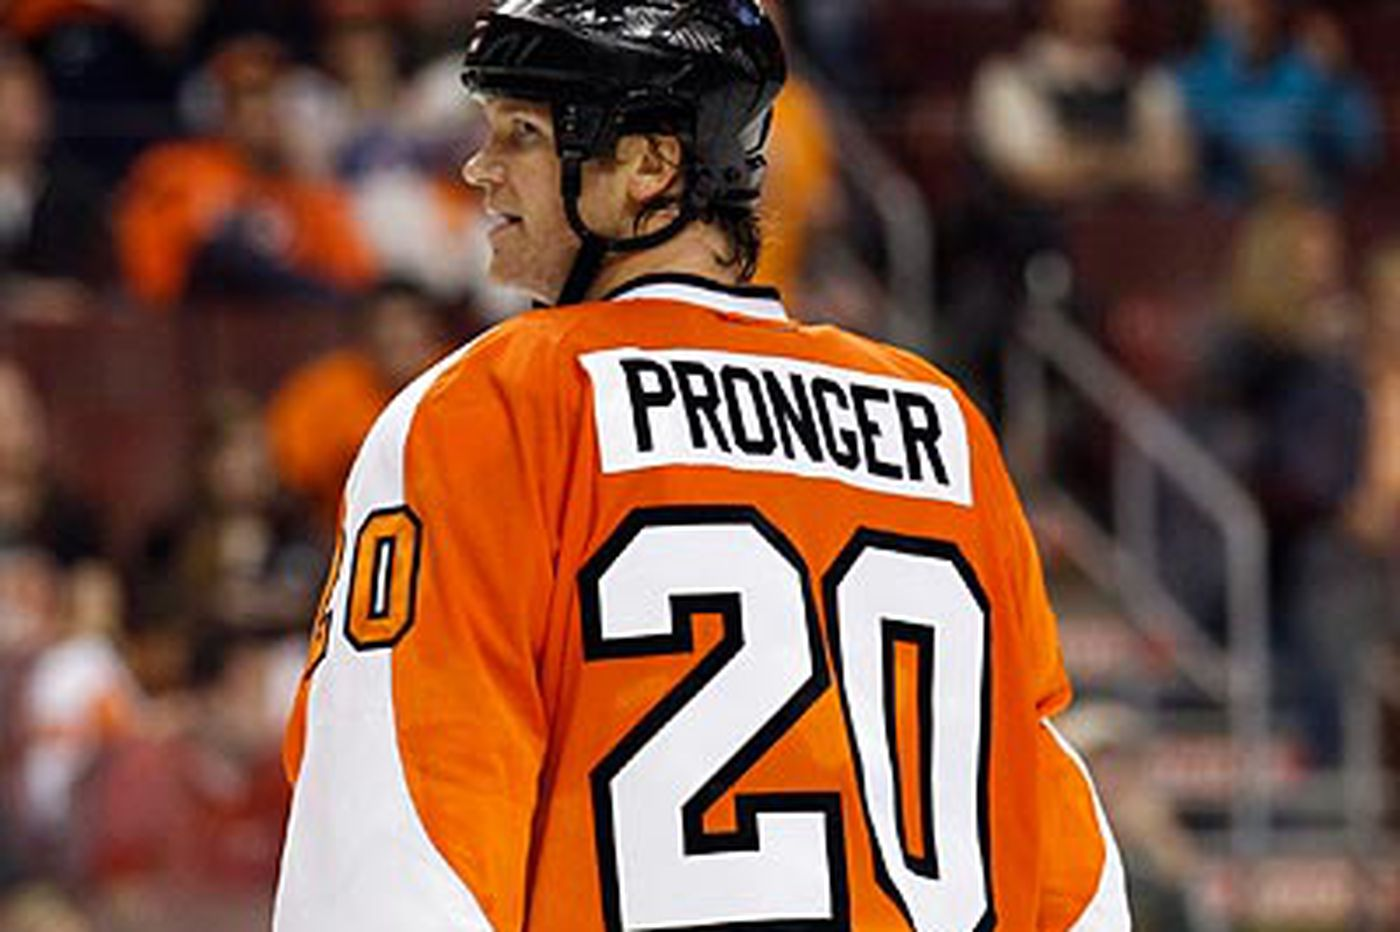 Flyers lose Pronger to postconcussion syndrome